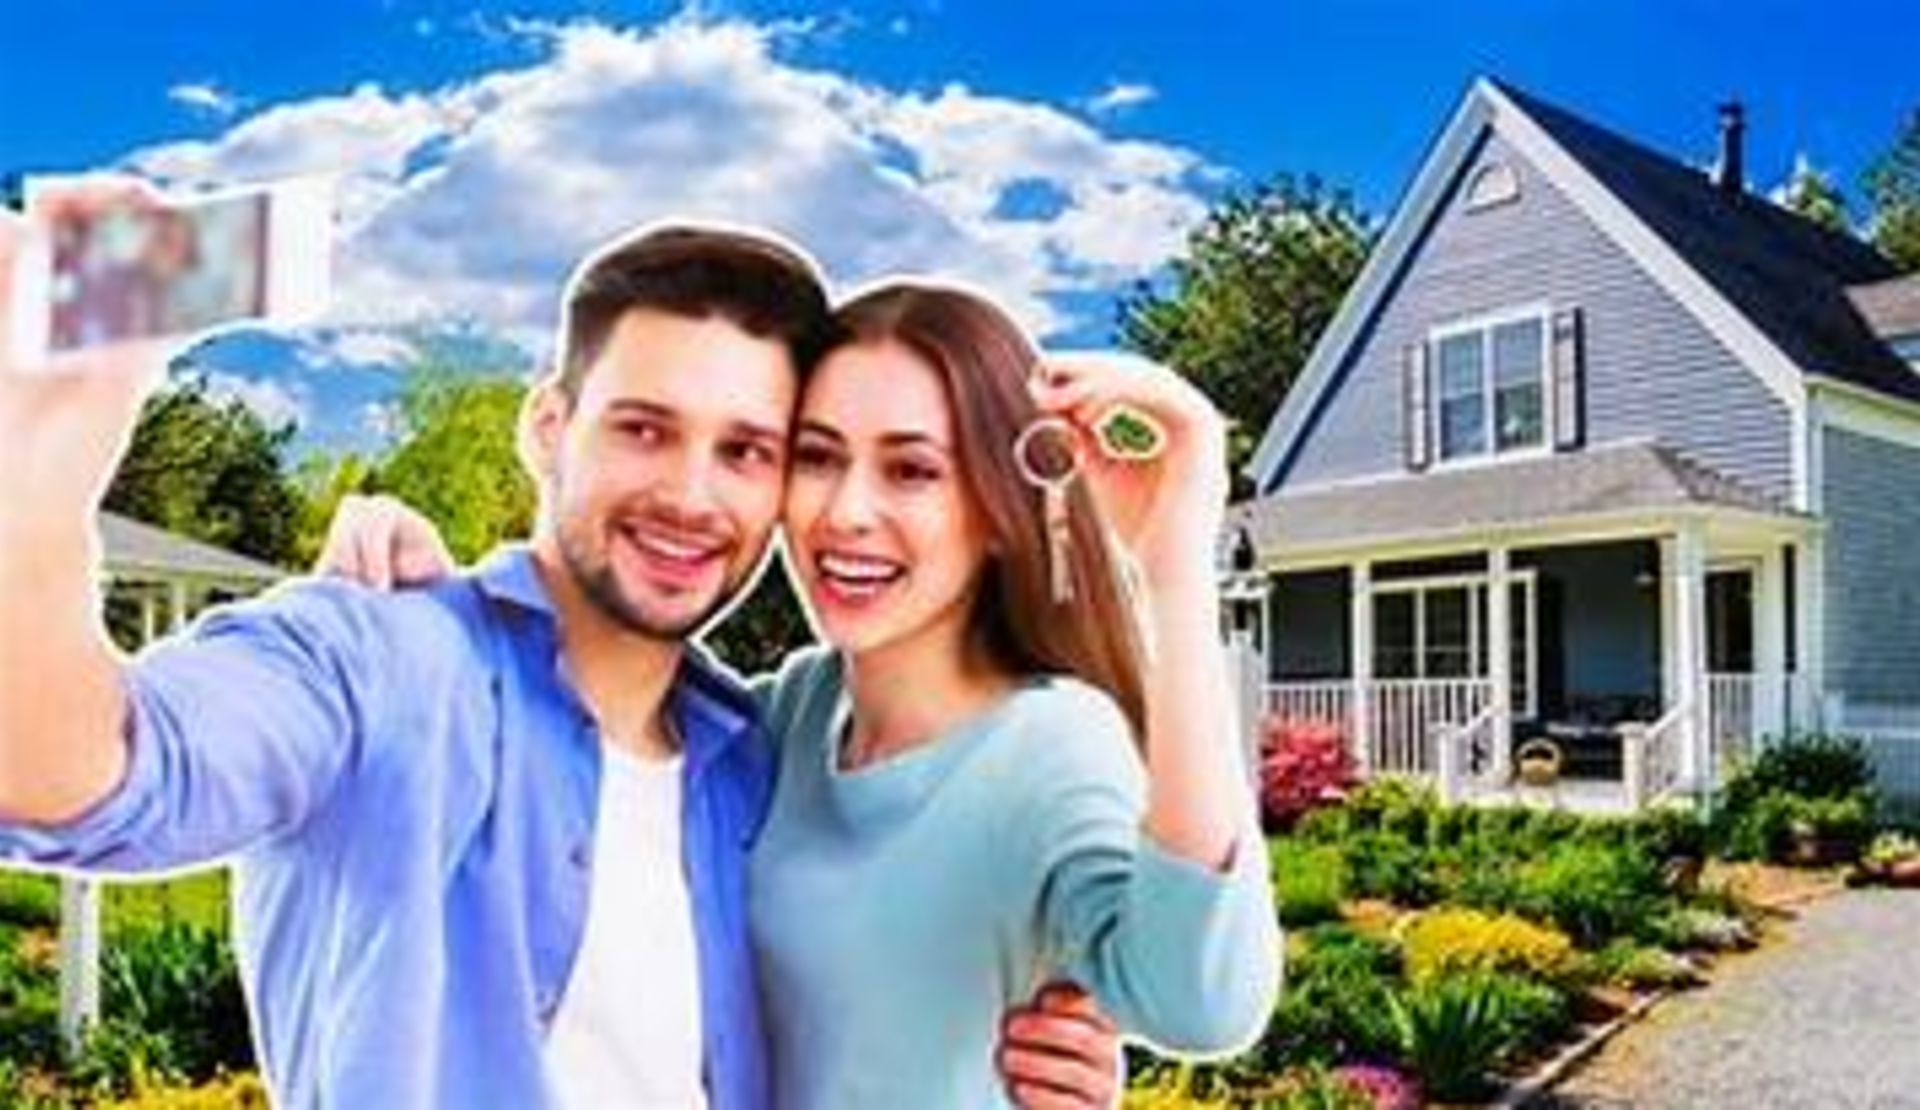 Serious Homebuyers Are Active During Pandemic, NAR Flash Survey Shows